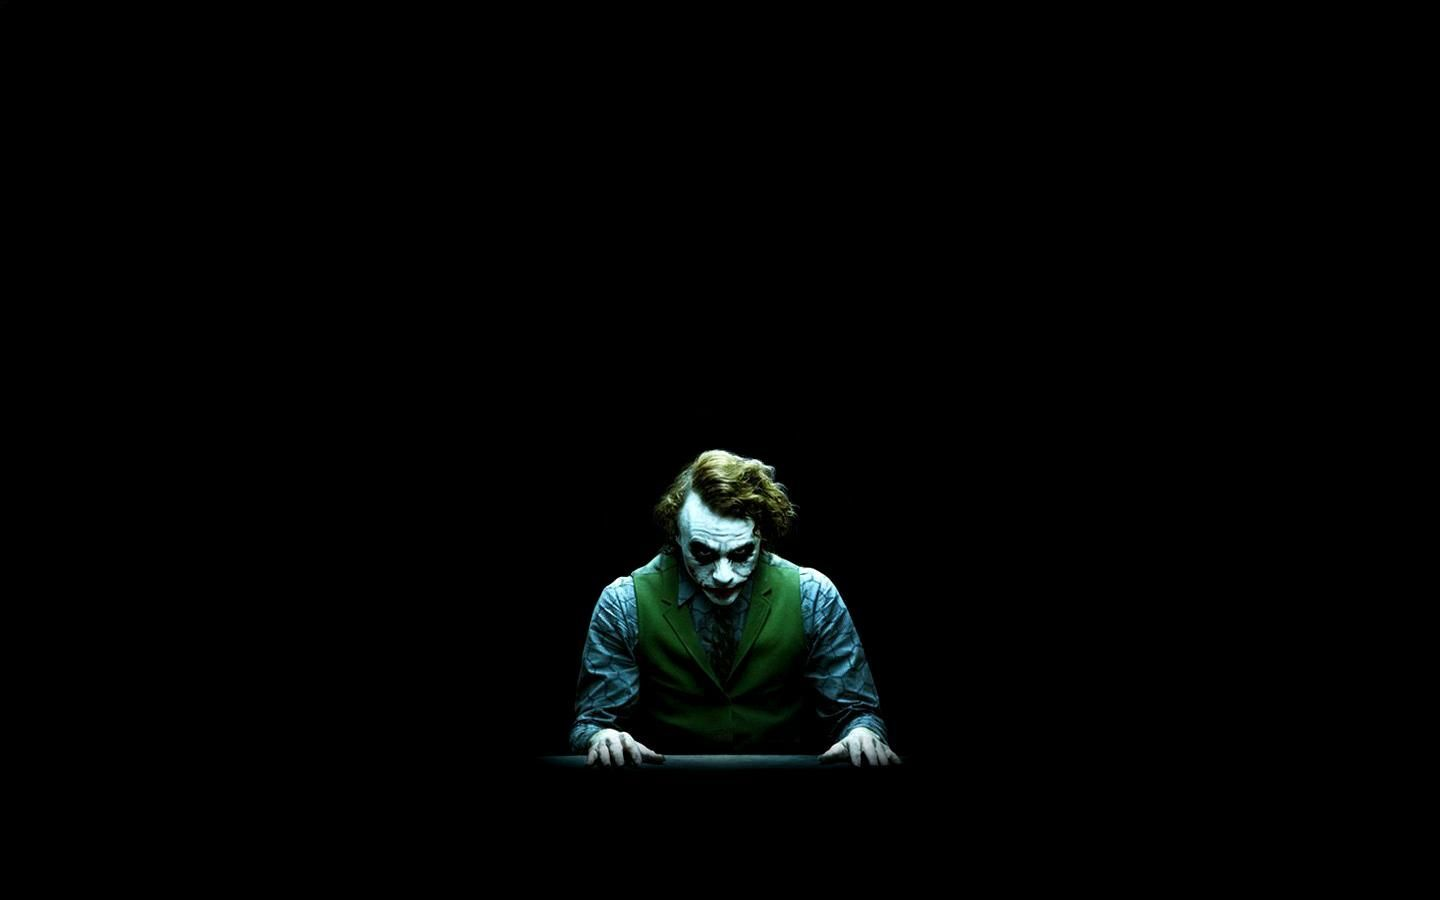 Joker HD Wallpapers Wallpaper